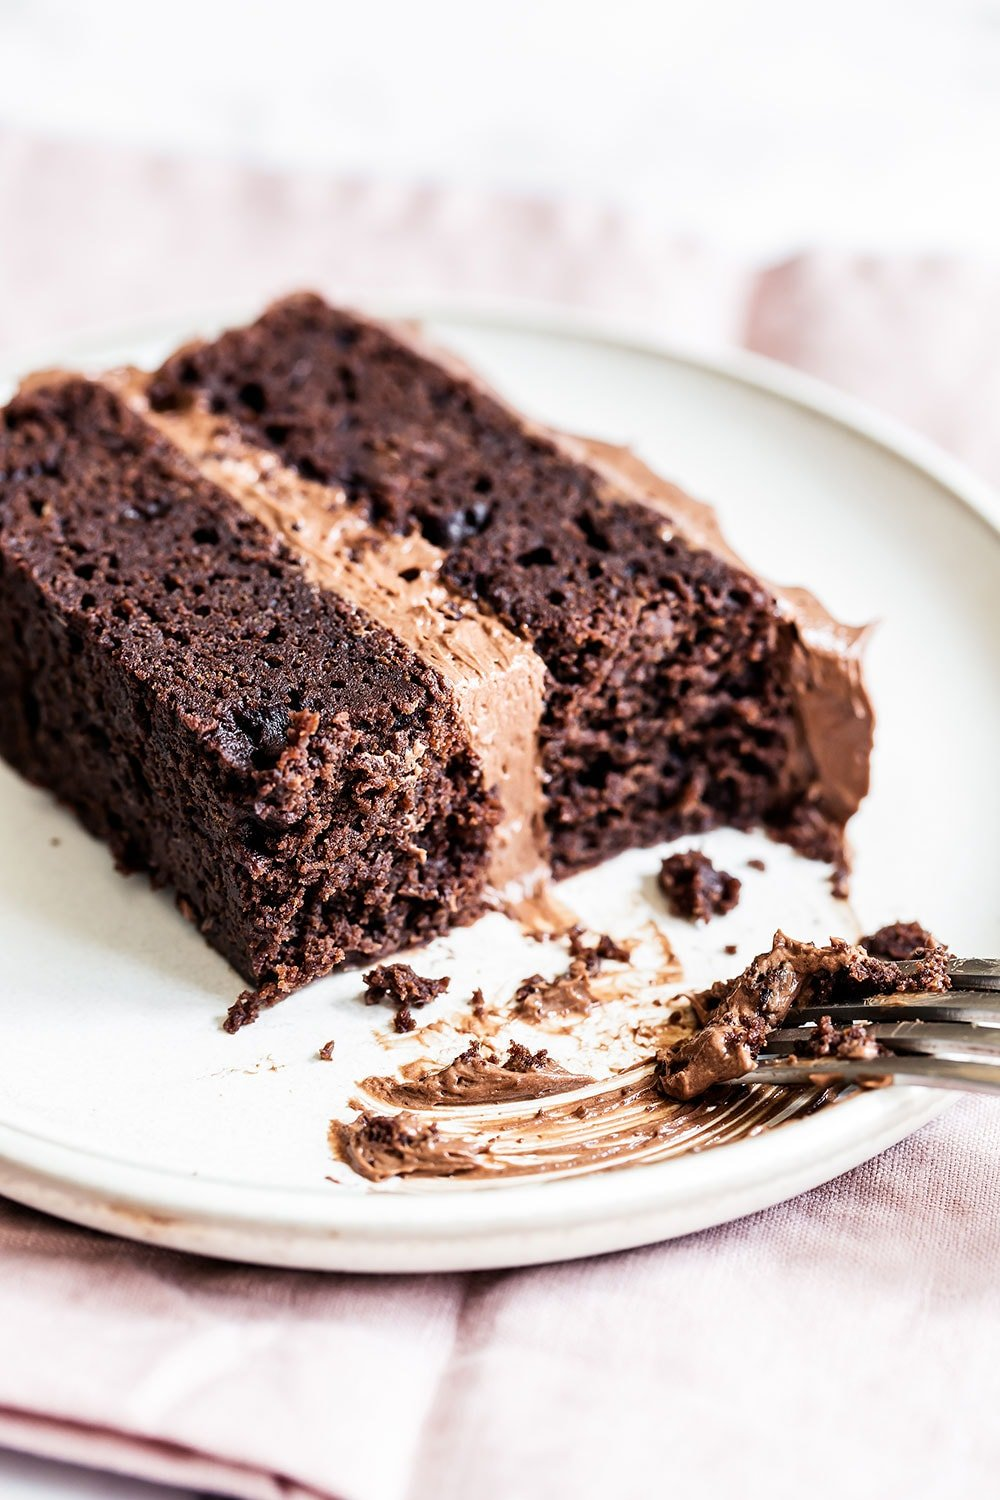 This Best Chocolate Cake recipe makes for the most flavorful, moist, and tender chocolate cake you've ever tasted! Everyone LOVES it and you don't even need a mixer to make the batter.